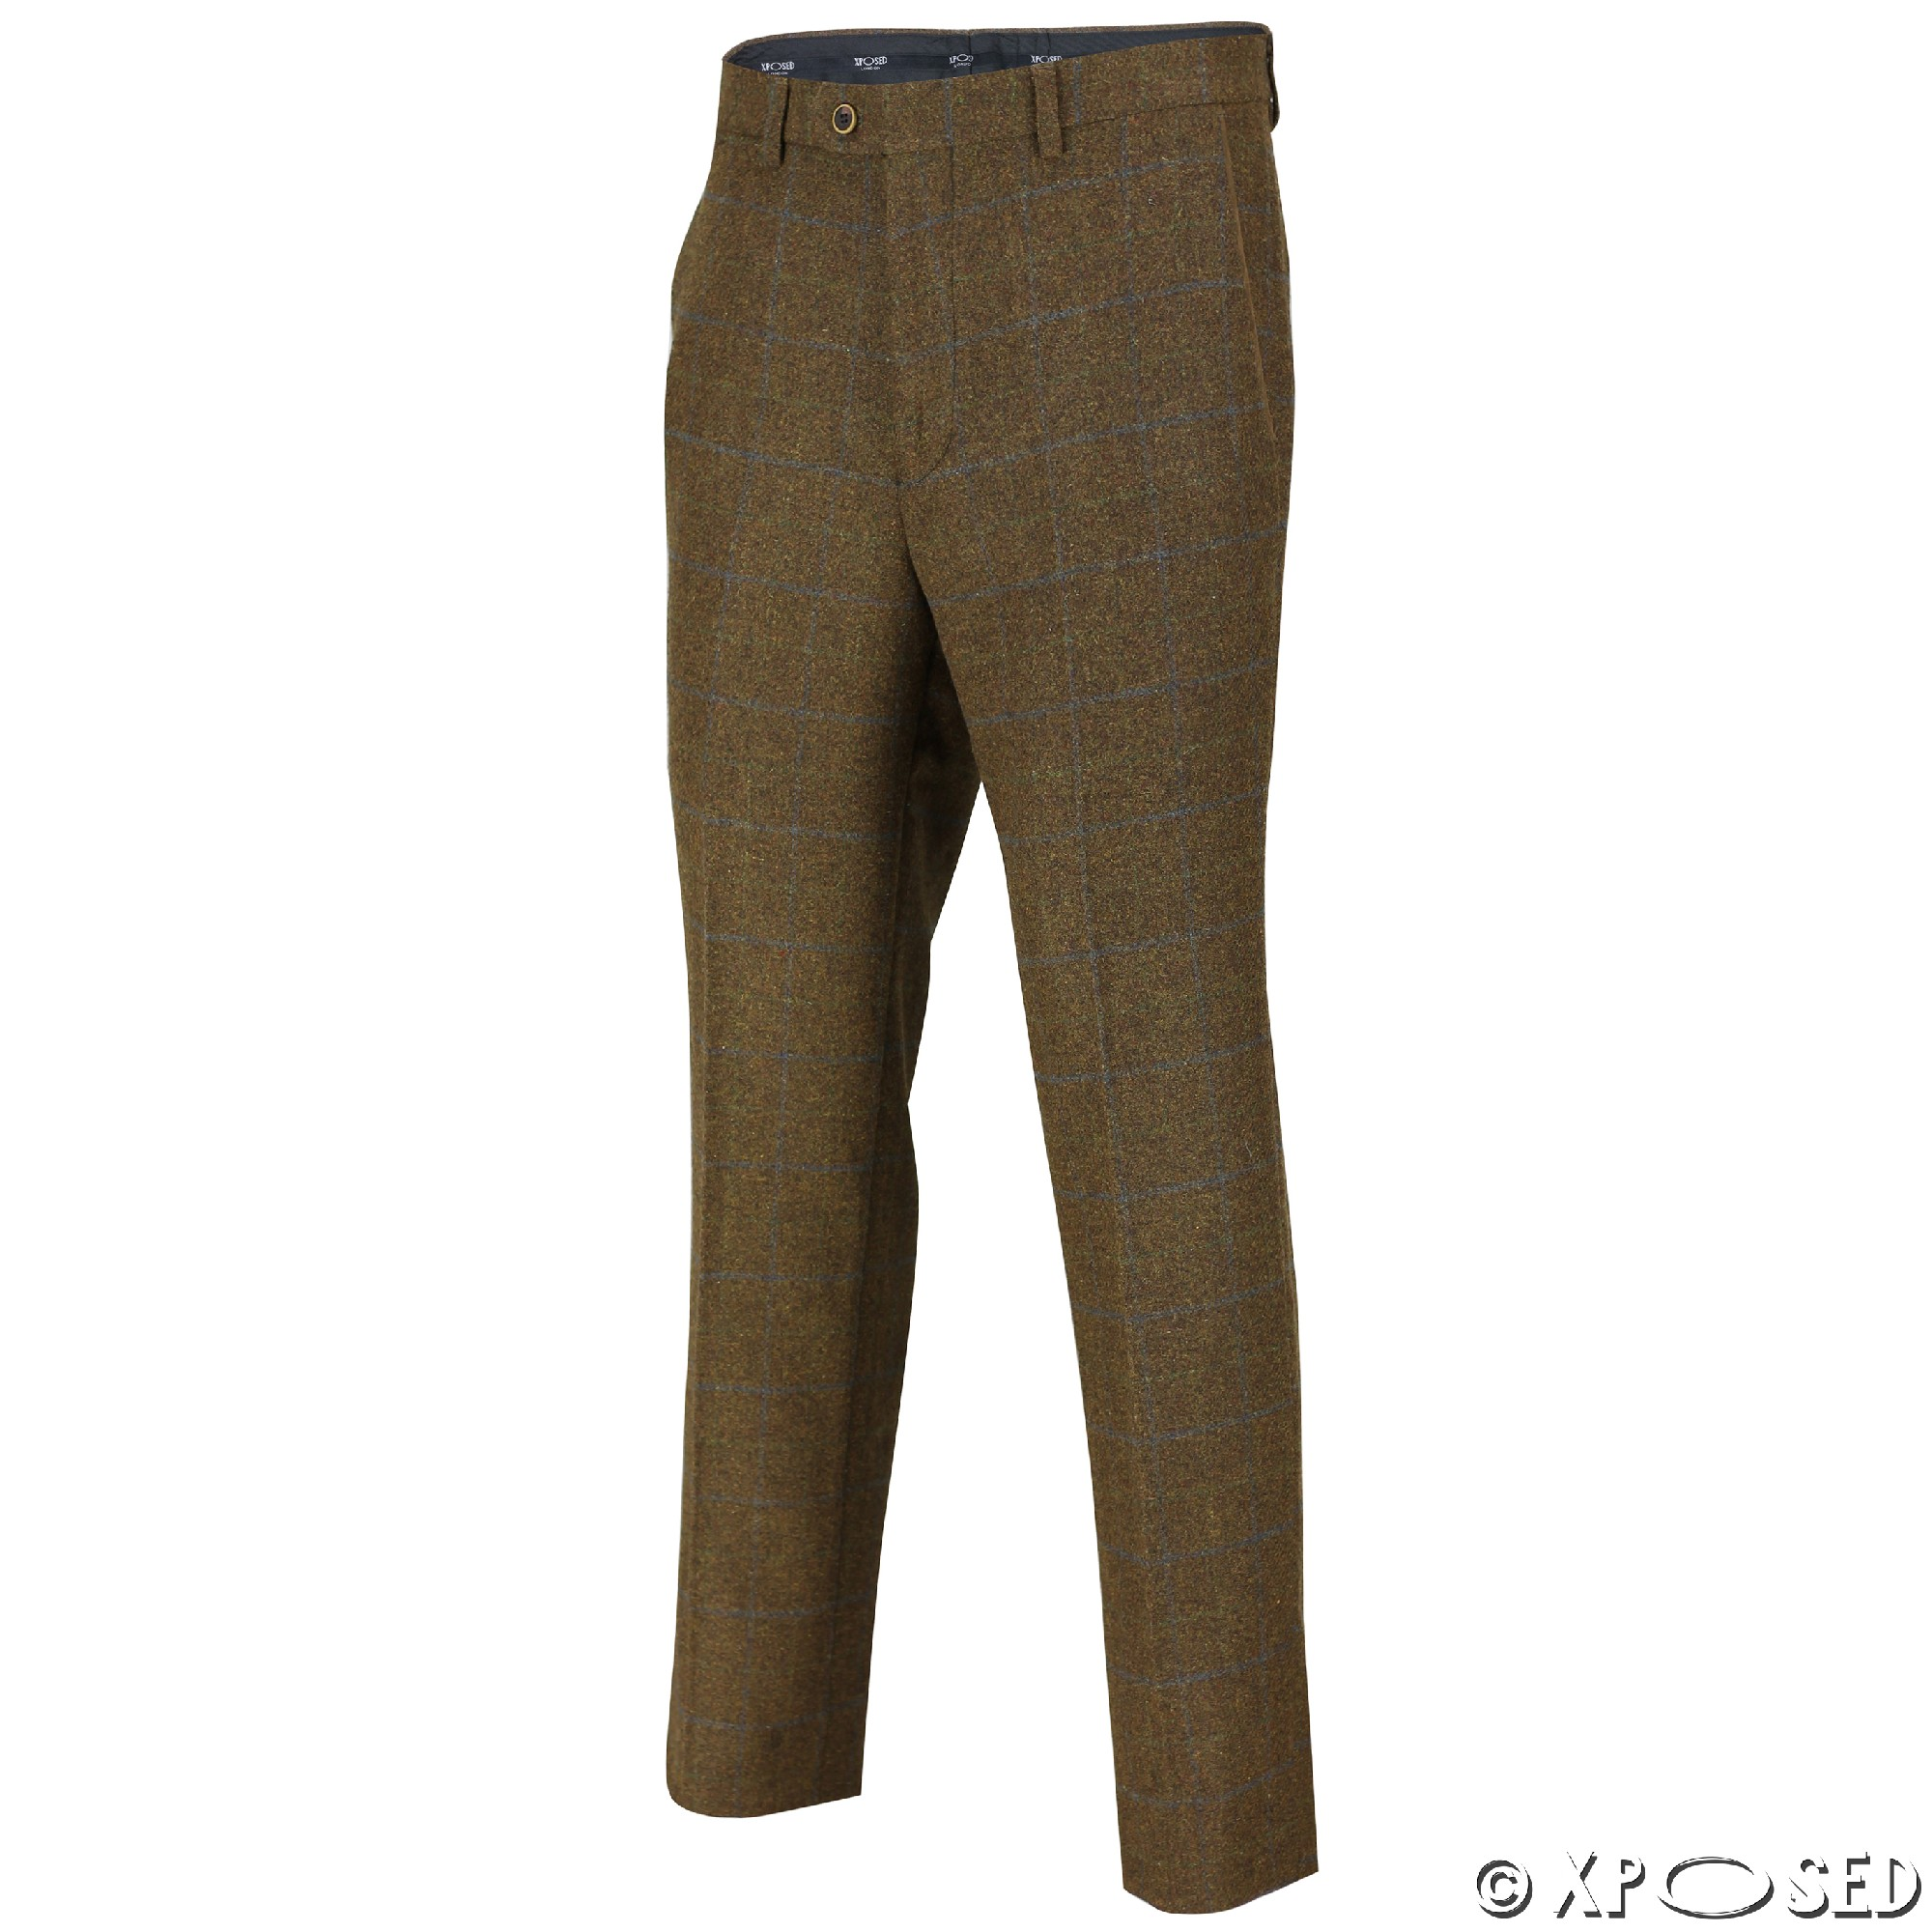 Find great deals on eBay for boys pants tweed. Shop with confidence.